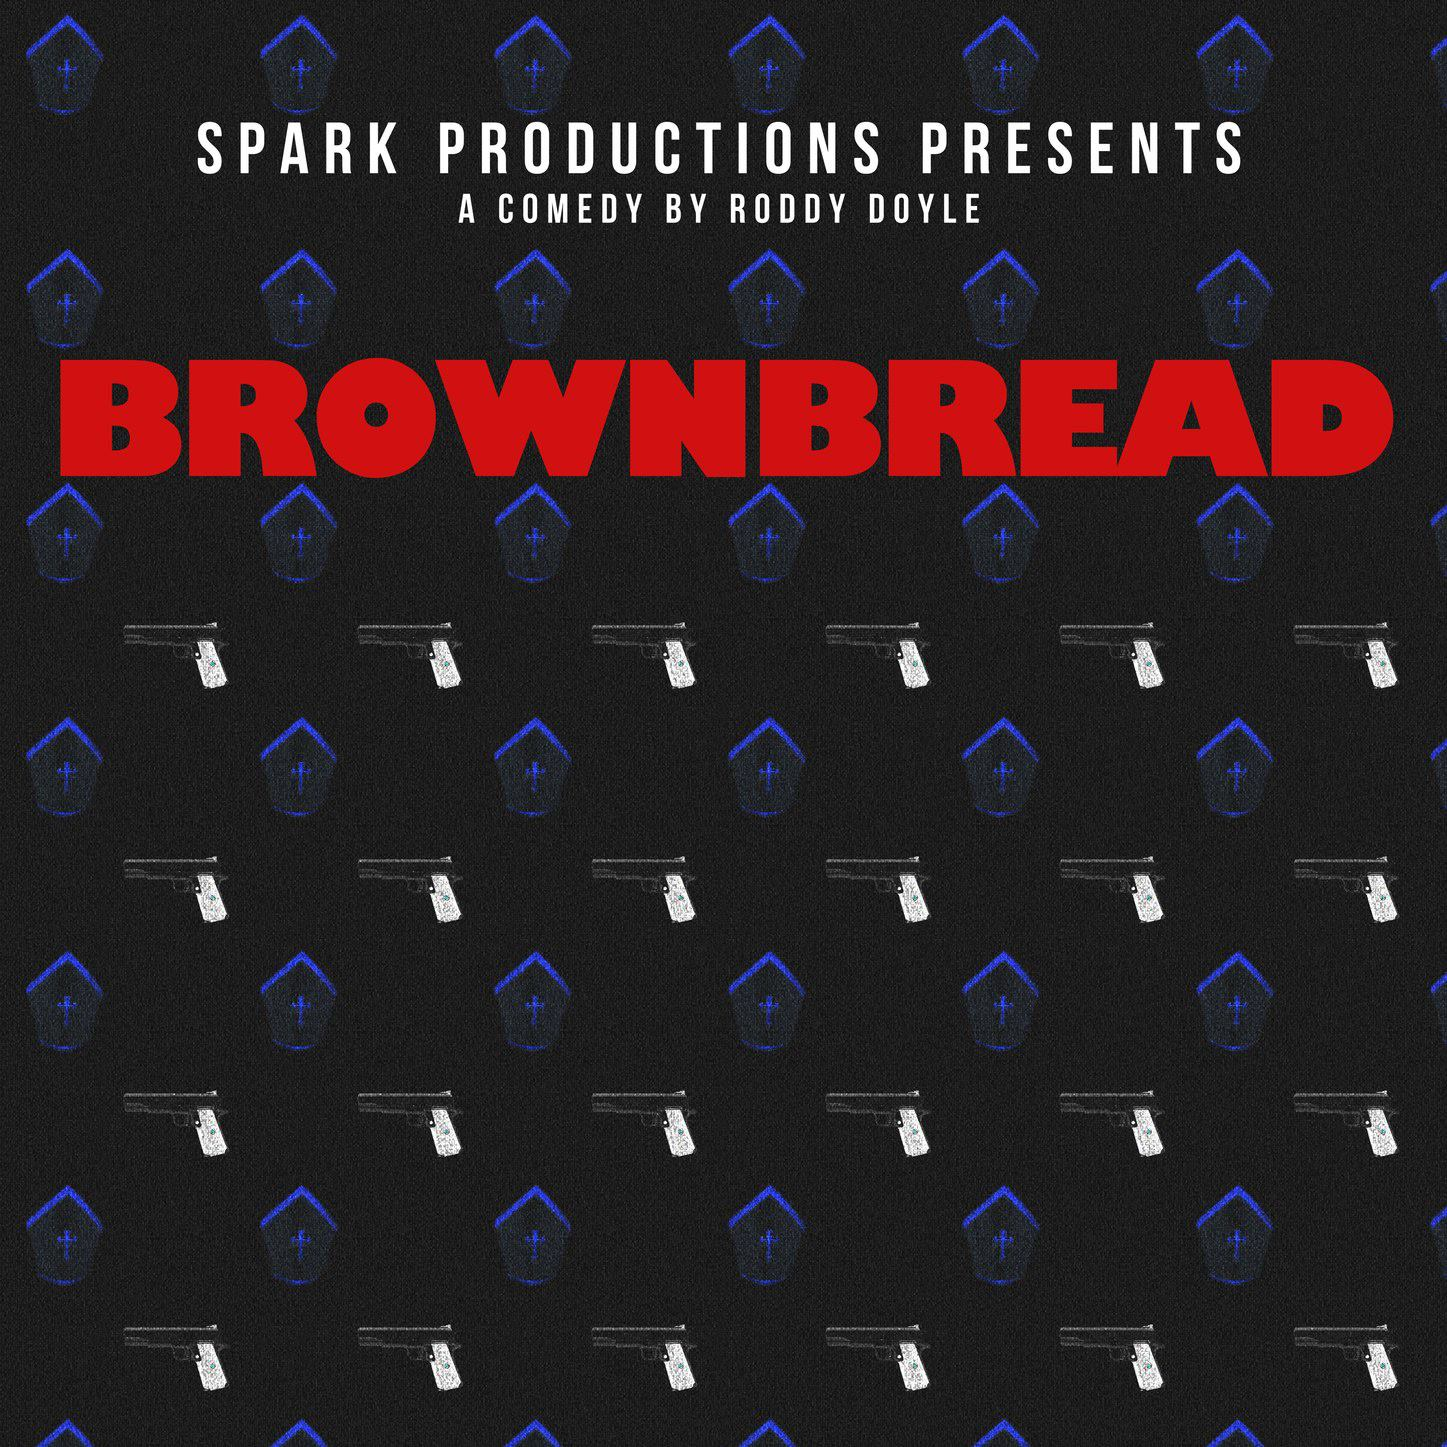 Sparks Are Making Brownbread